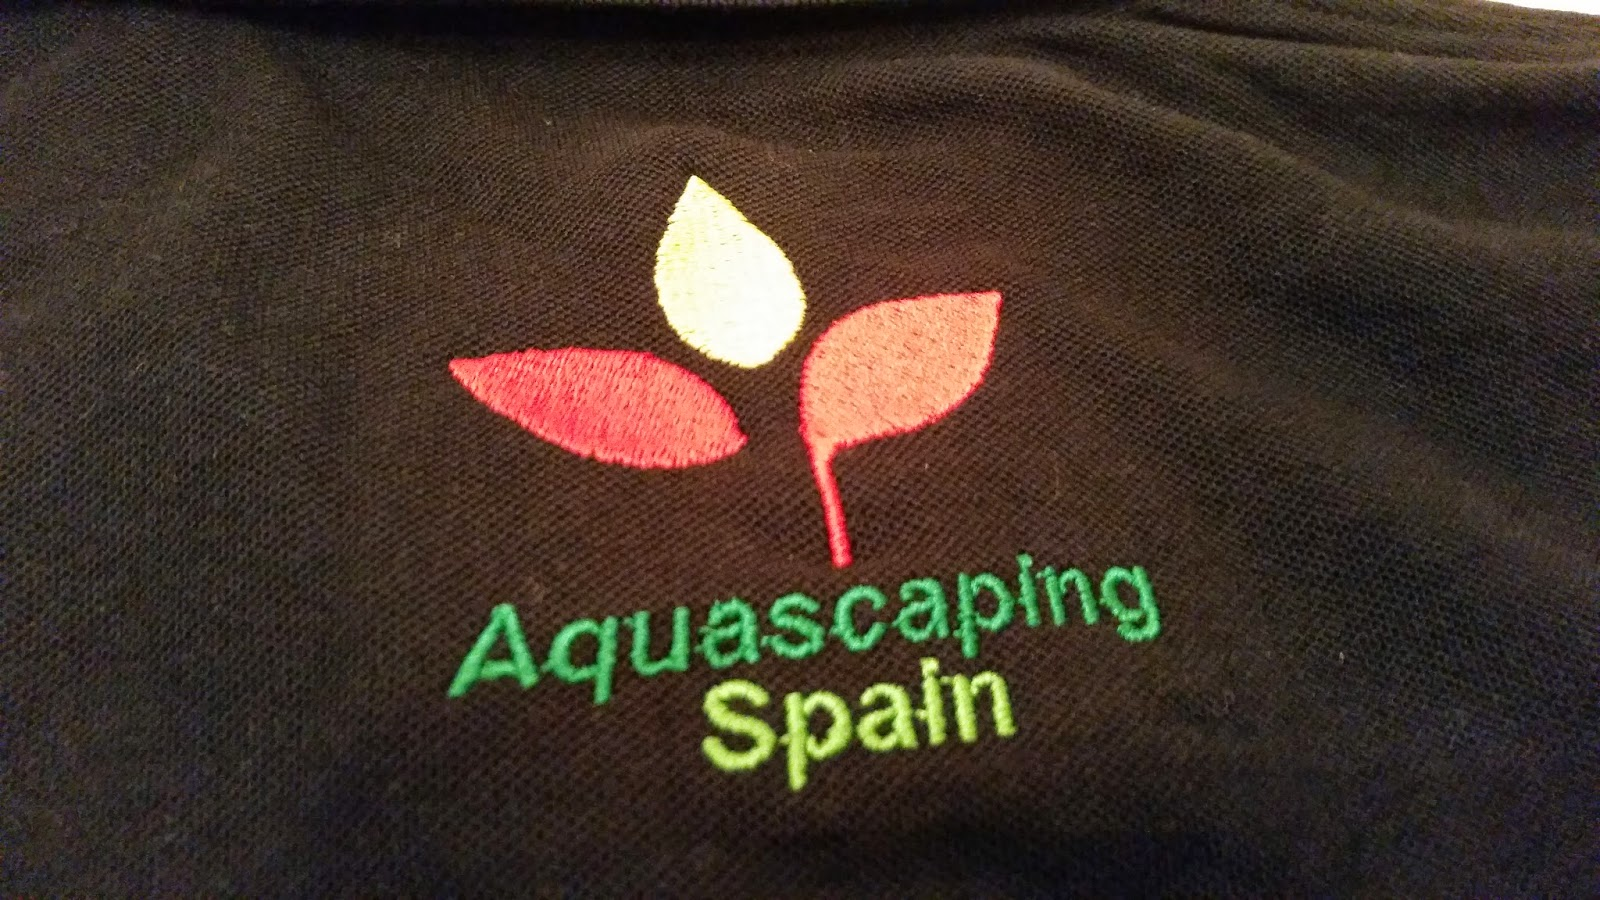 Aquascaping spain polo bordado aquascaping spain - Aquascape espana ...